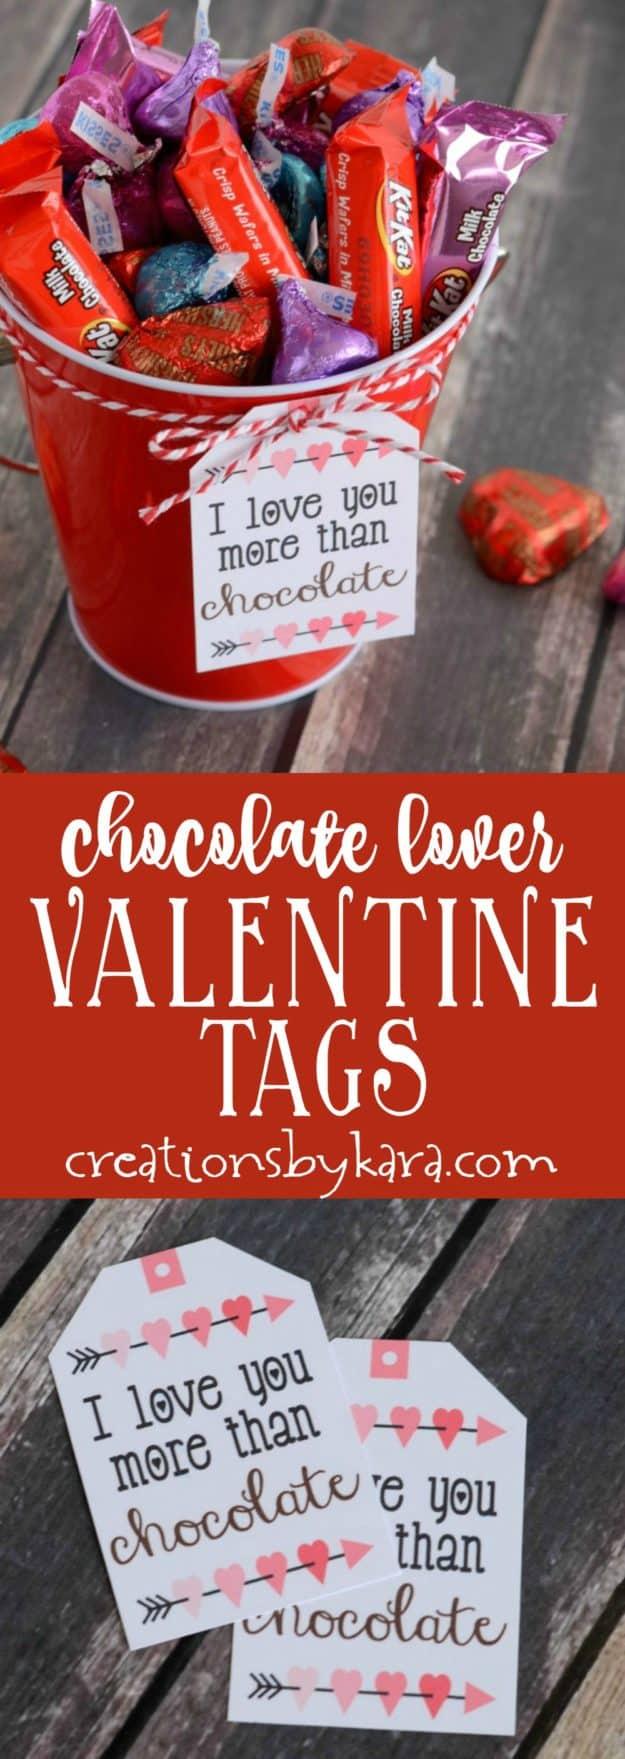 Chocolate Lover Valentine gift tags collage